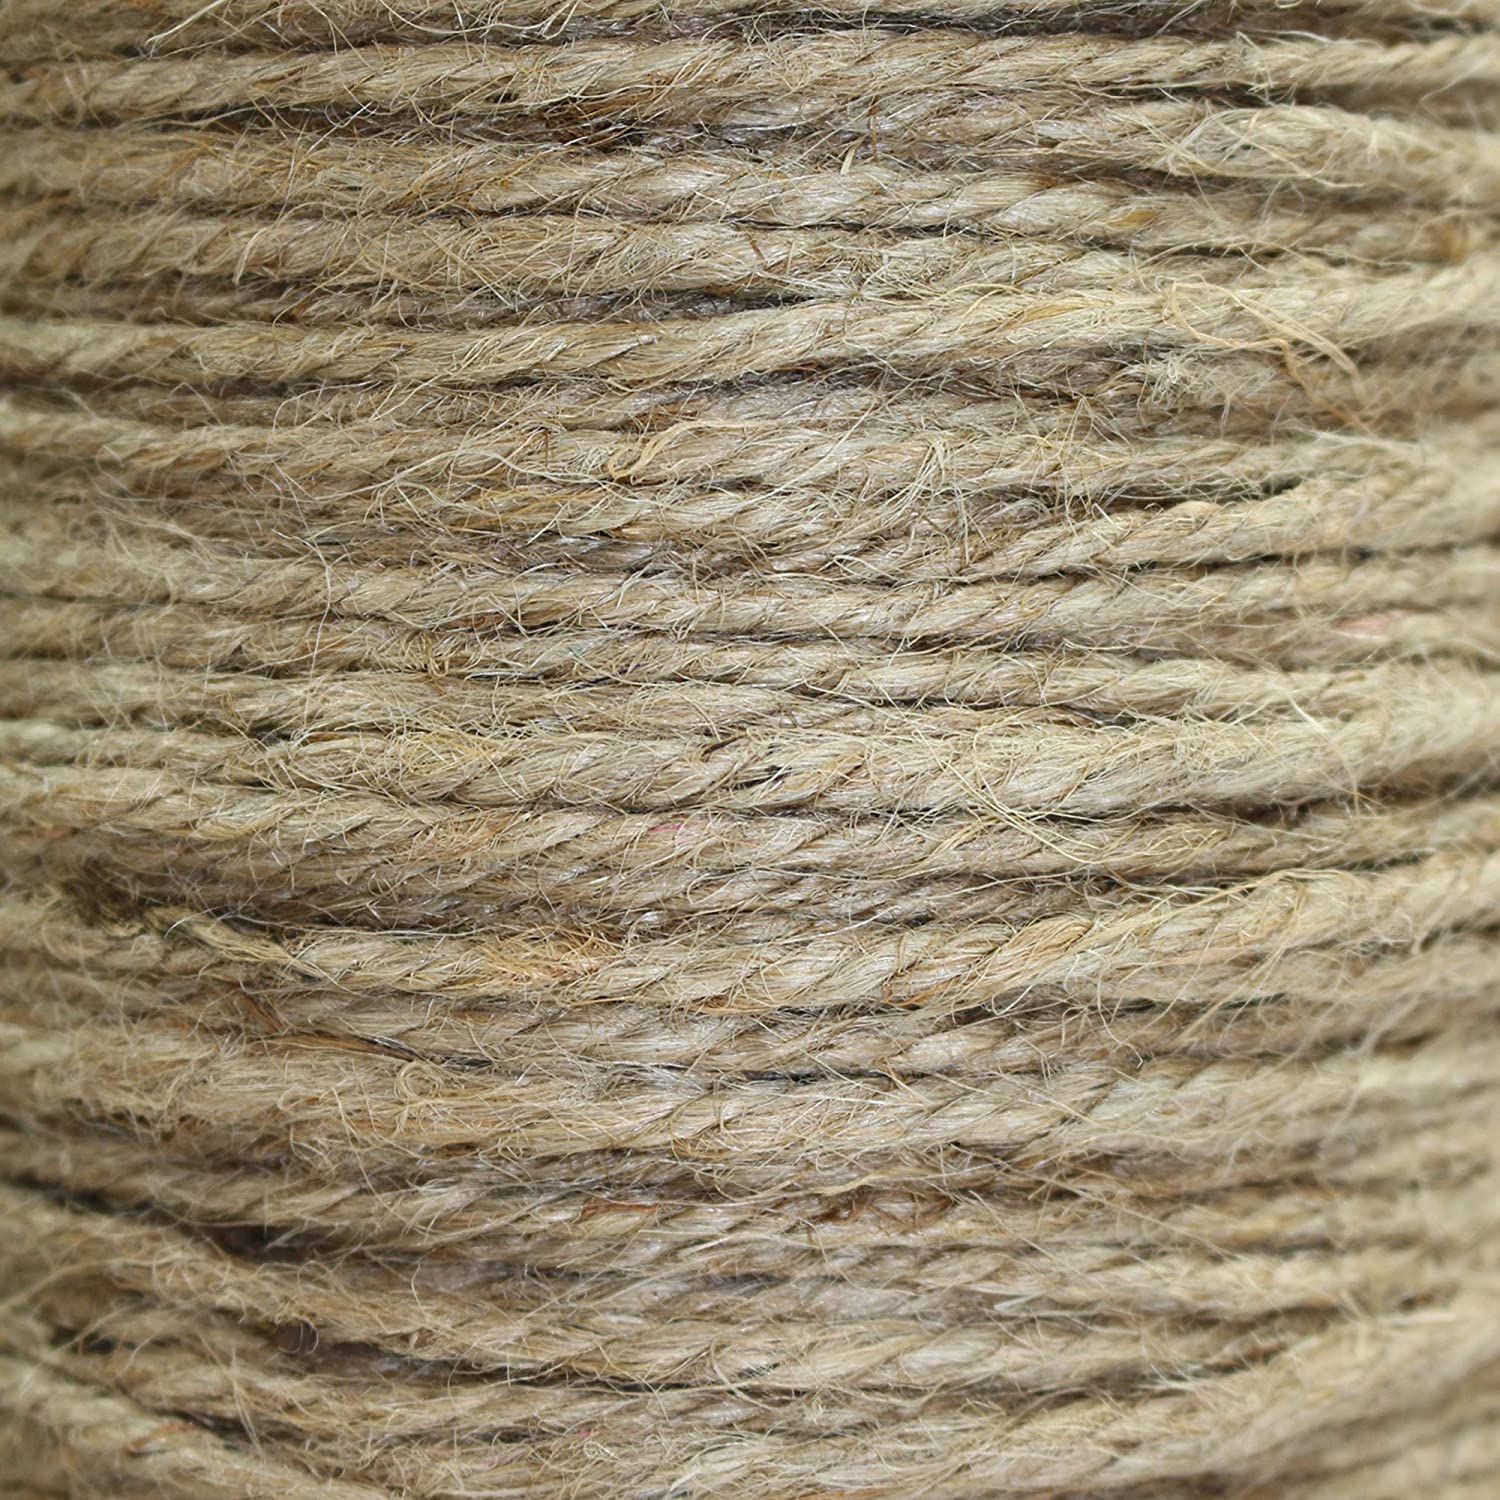 Crafts /& Crafting Packing SGT KNOTS Garden /& Gardening Thick Heavy Duty 3 Strand Jute Ropes Bailing Survival 1//4 in x 200 ft Strong All Natural Jute Fibers Twisted Jute Rope Home Decor